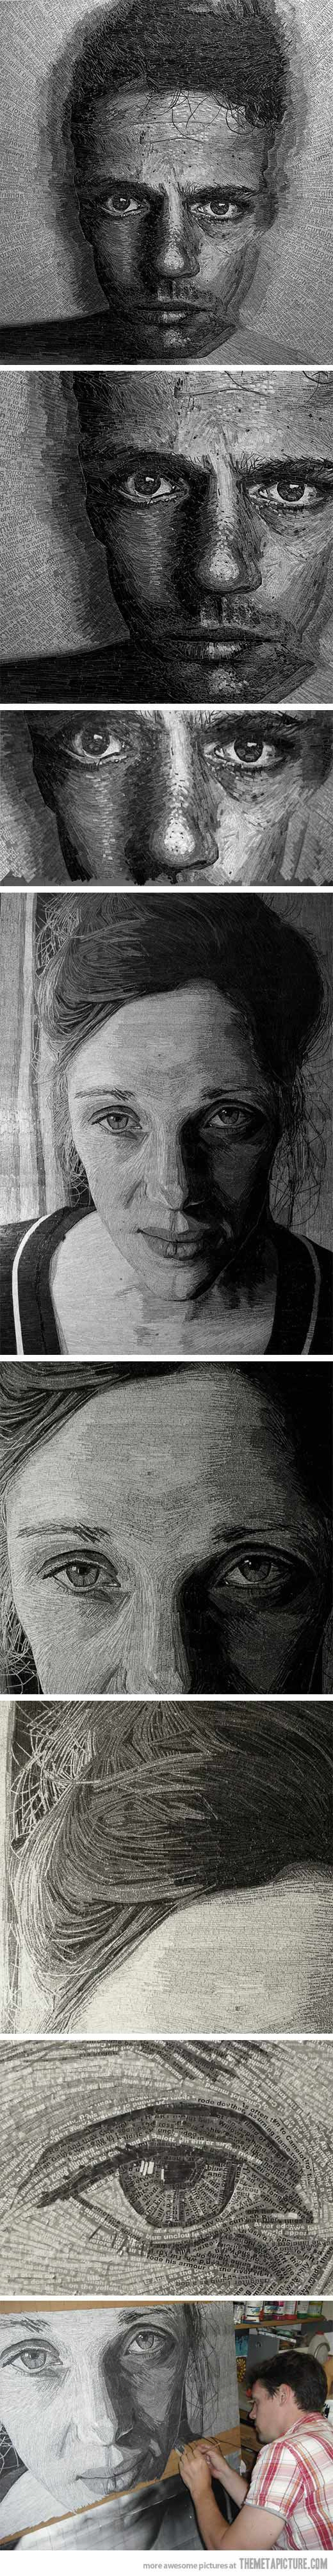 Portraits made of shredded poetry by Jamie Poole…